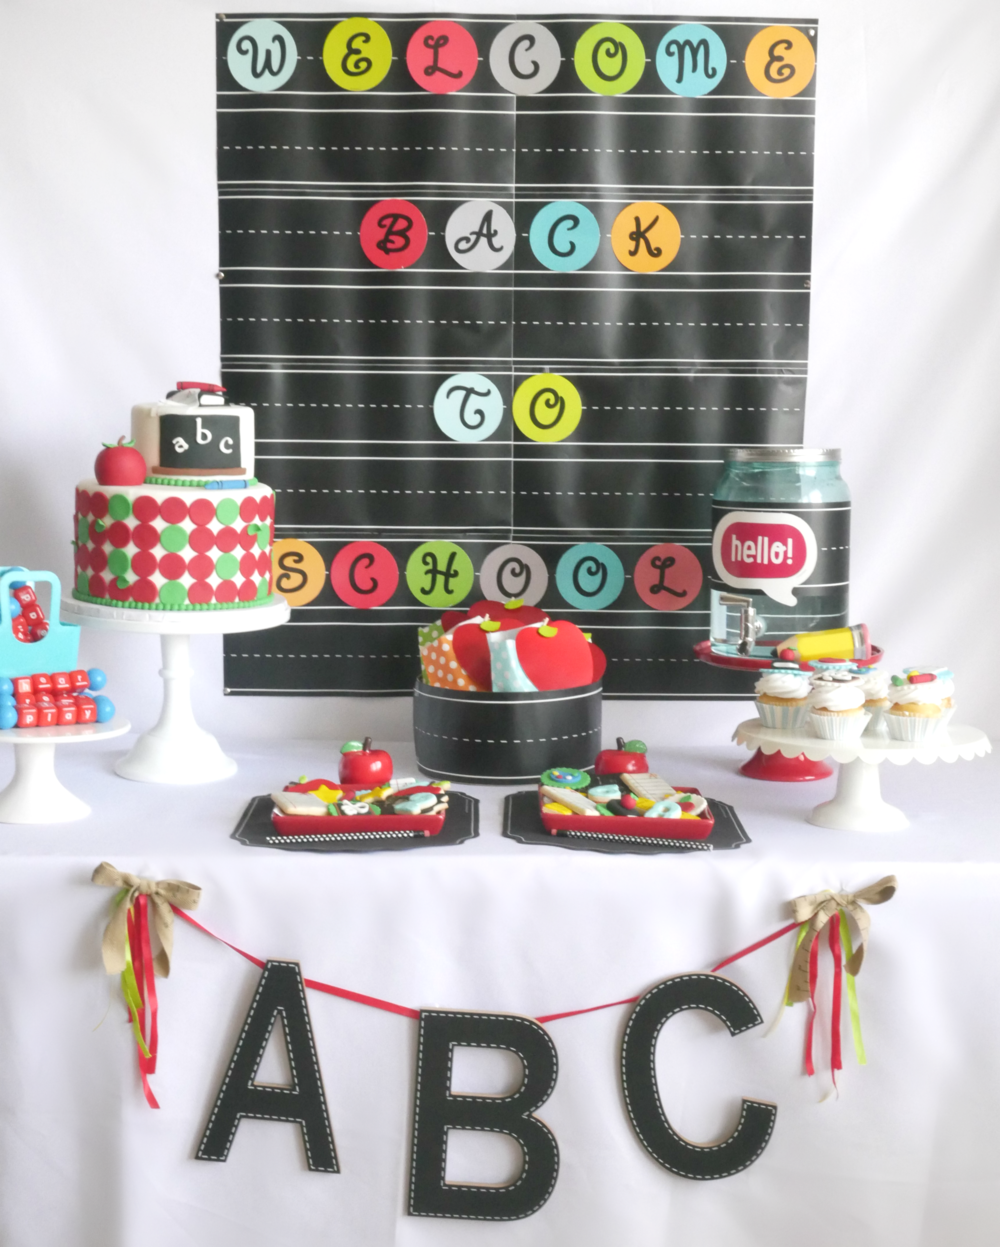 Modern Polka Dots mixed with chalkboard themed back to school party idea, love all the cute party decorations and desserts! #Backtosschoolparty #backto schooldesserts